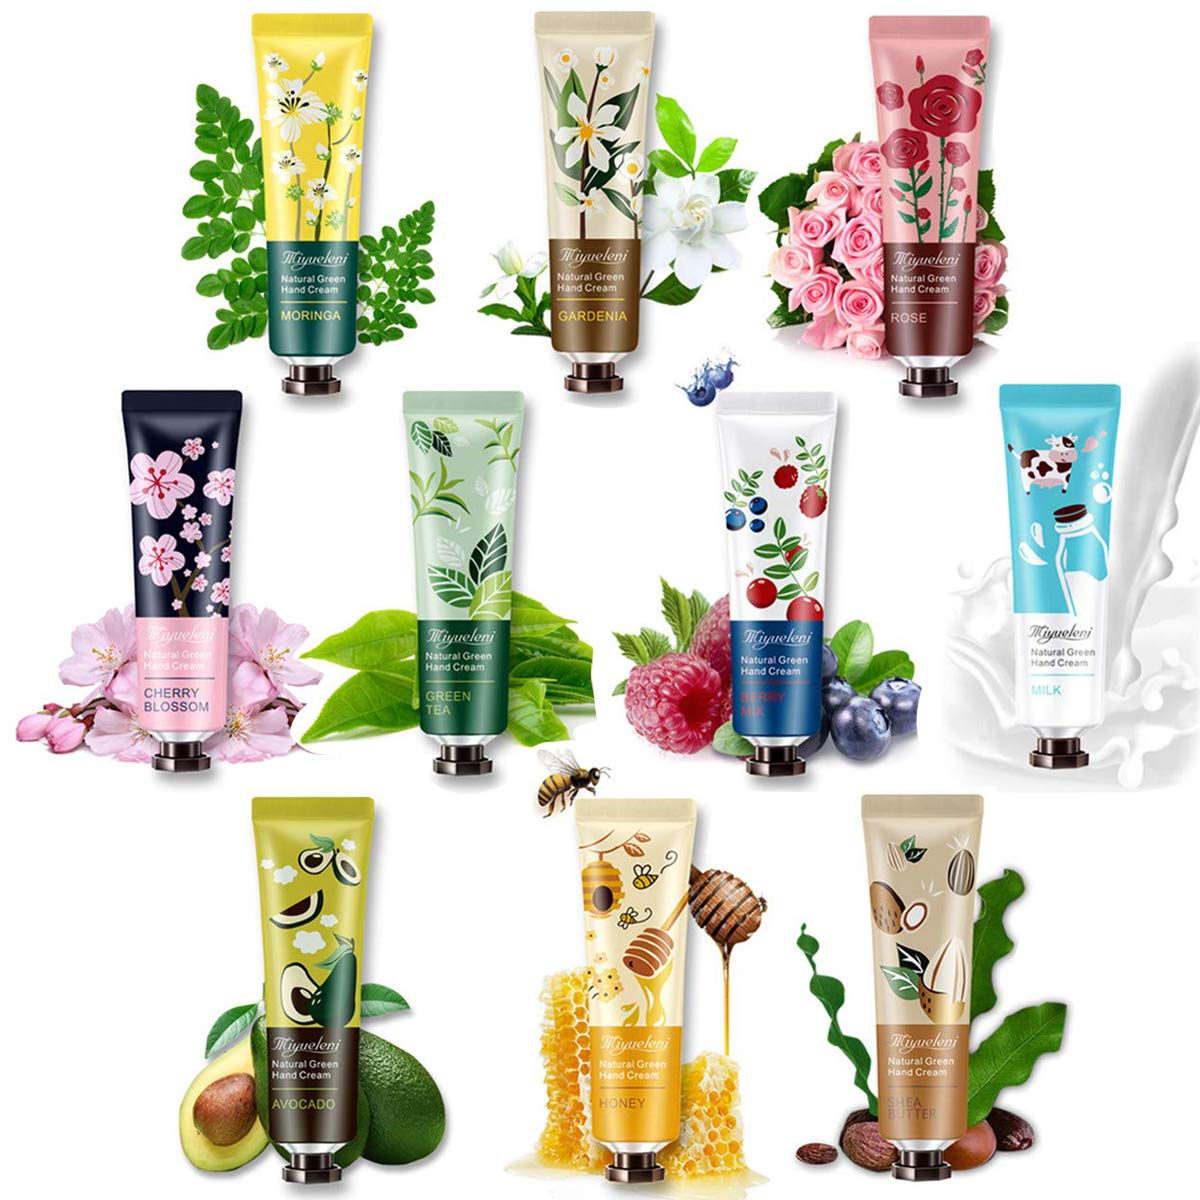 Hand Cream Hand Moisturizer - 10 Pack Plant Fragrance Hand Cream Moisturizing Hand Care Cream Gift Set for Working Hands & Dry Skin, Travel Size Hand Lotion, Best Women Gifts-30ml : Beauty